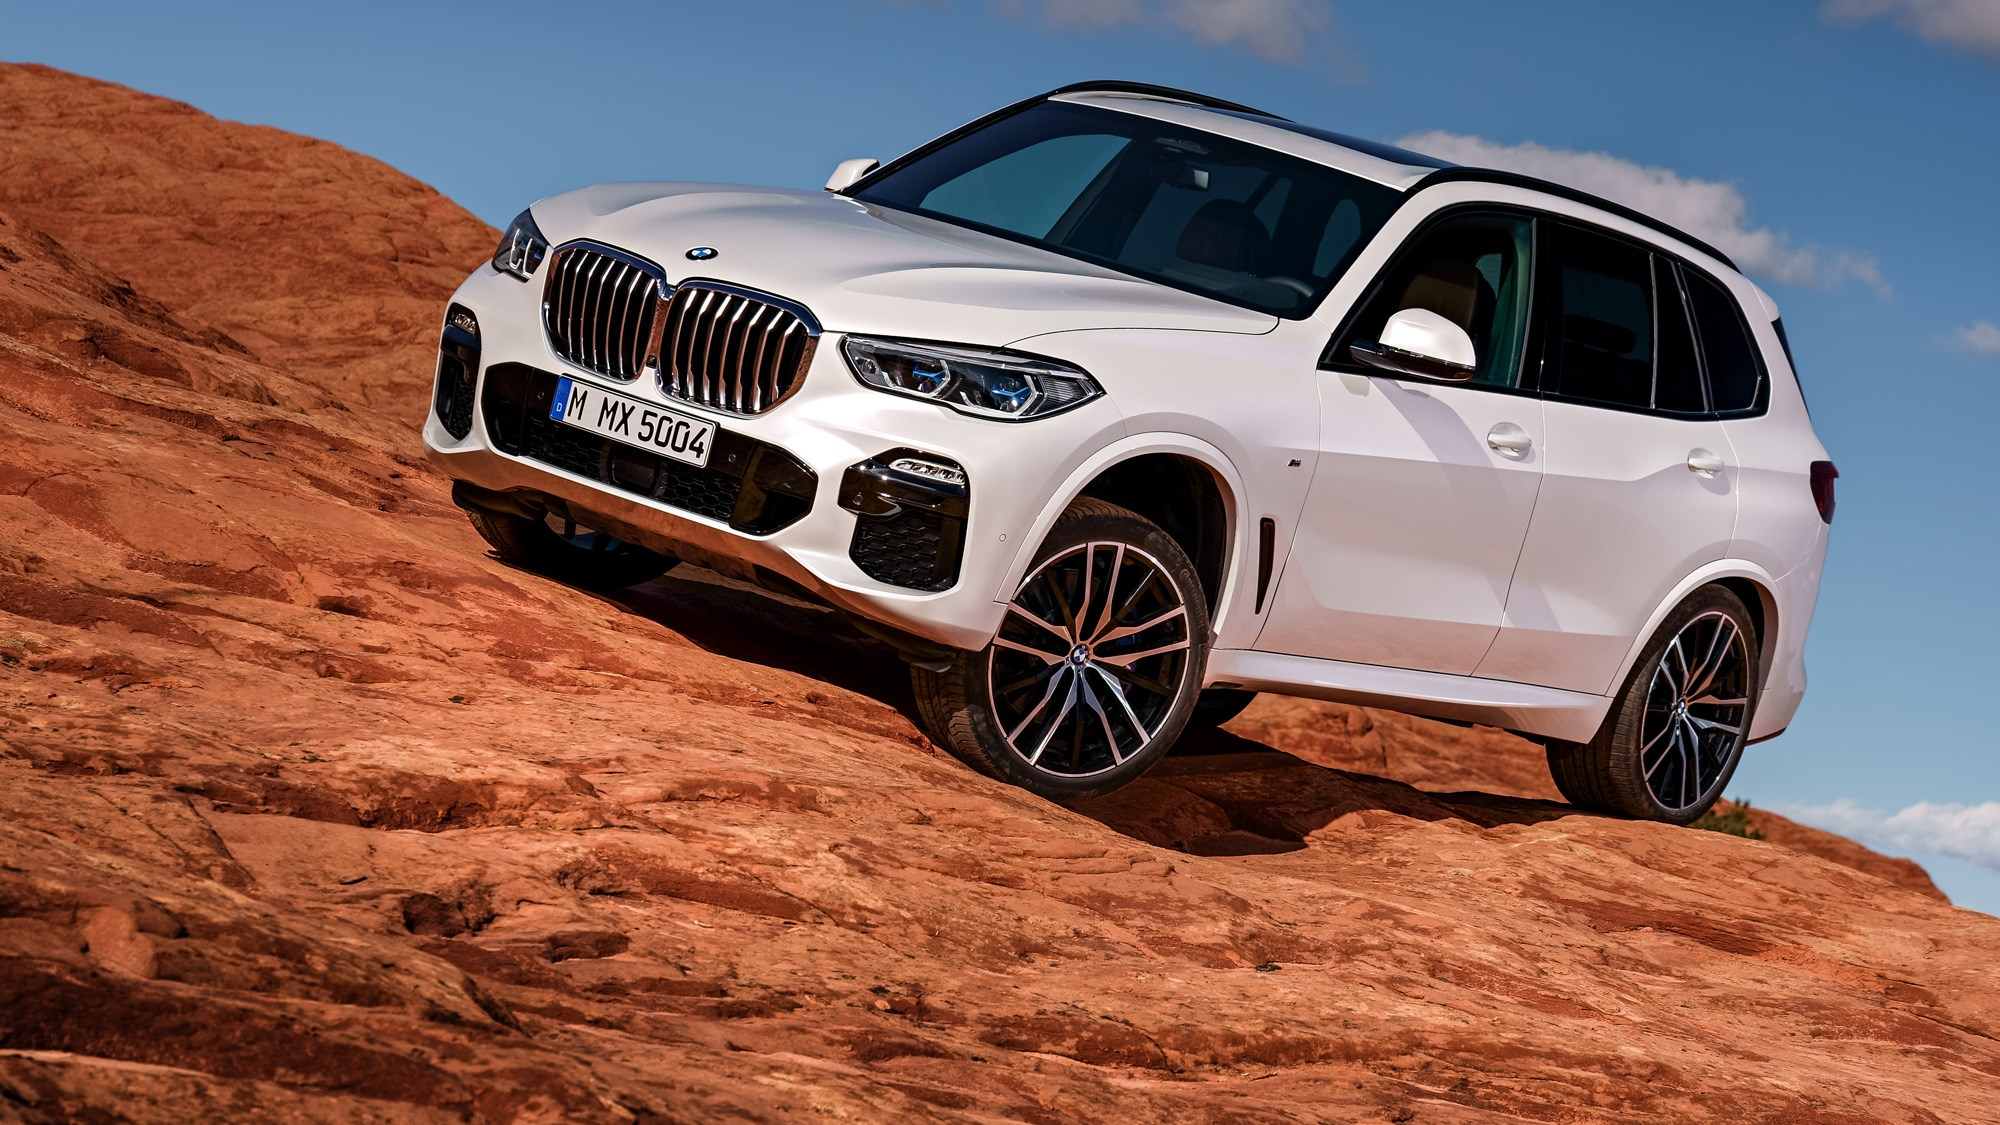 new bmw x5 fourth gen premium suv is here car magazine. Black Bedroom Furniture Sets. Home Design Ideas